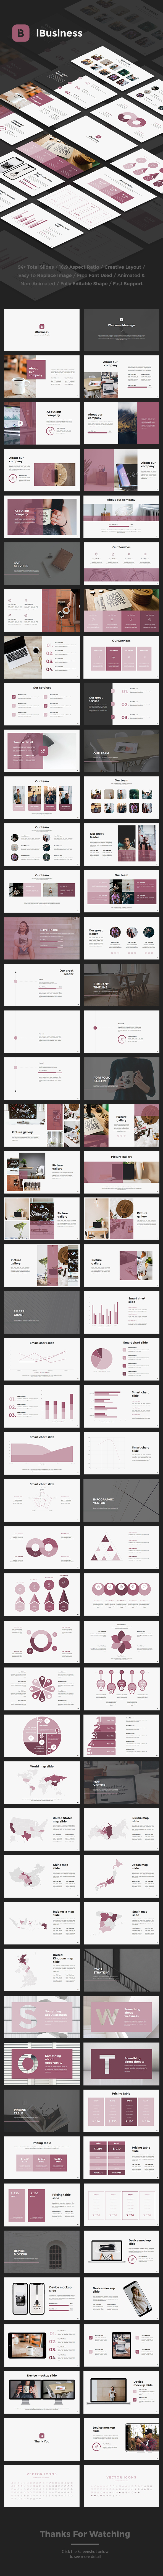 iBusiness Google Slides - Google Slides Presentation Templates